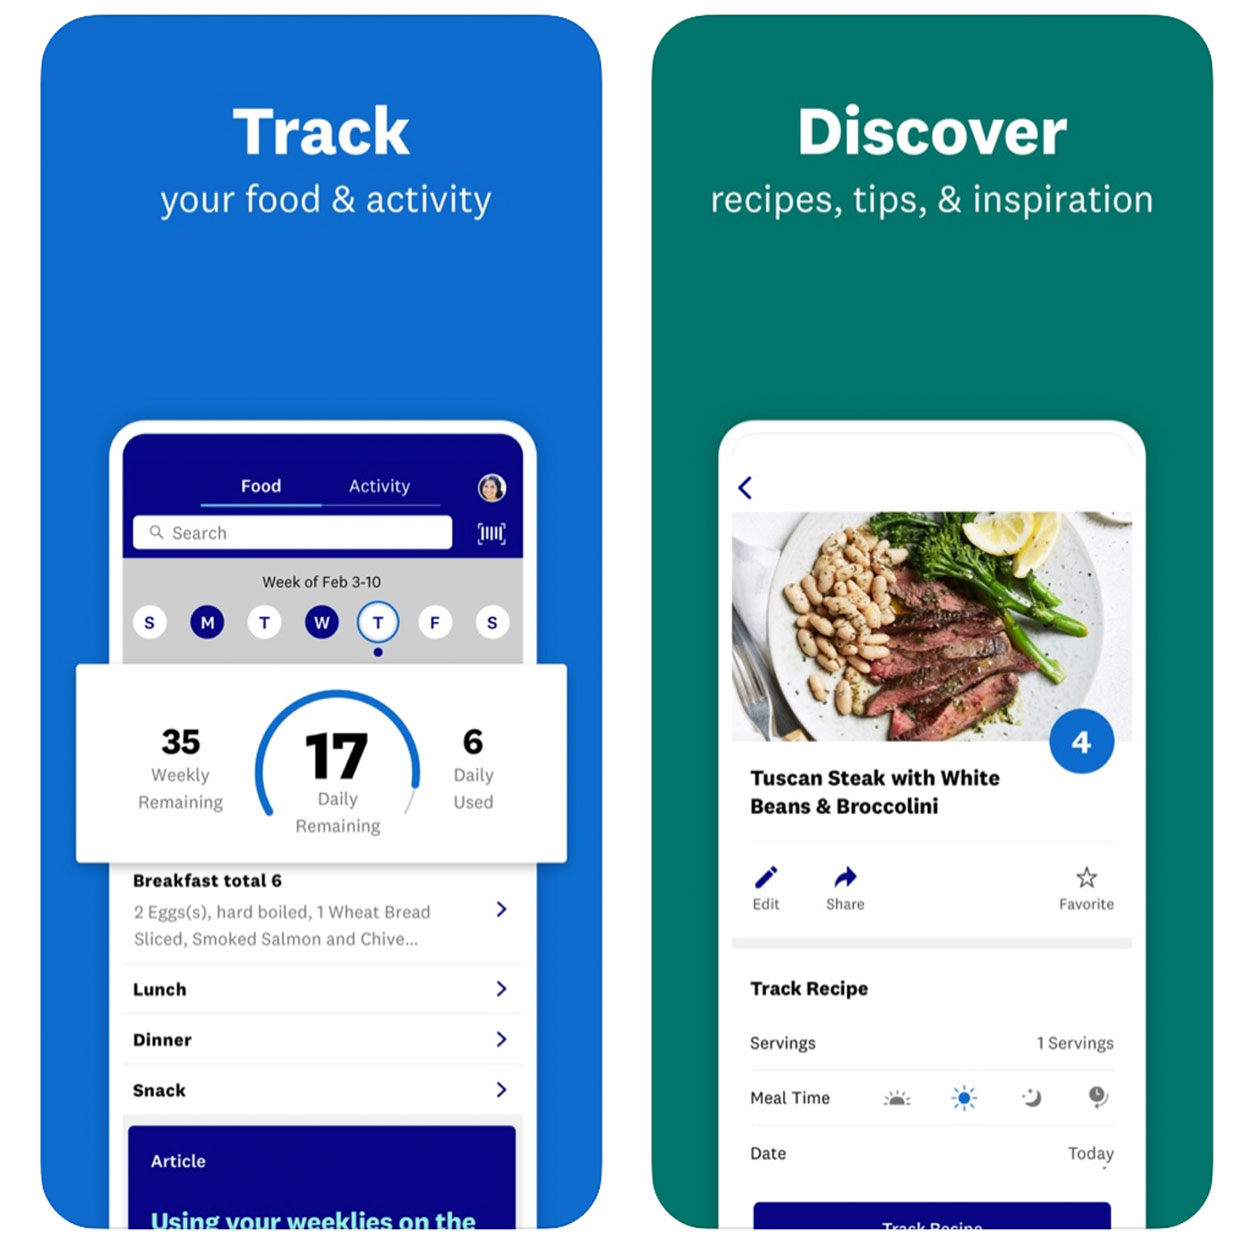 Demonstrate app interface for meal planning and workout tracking